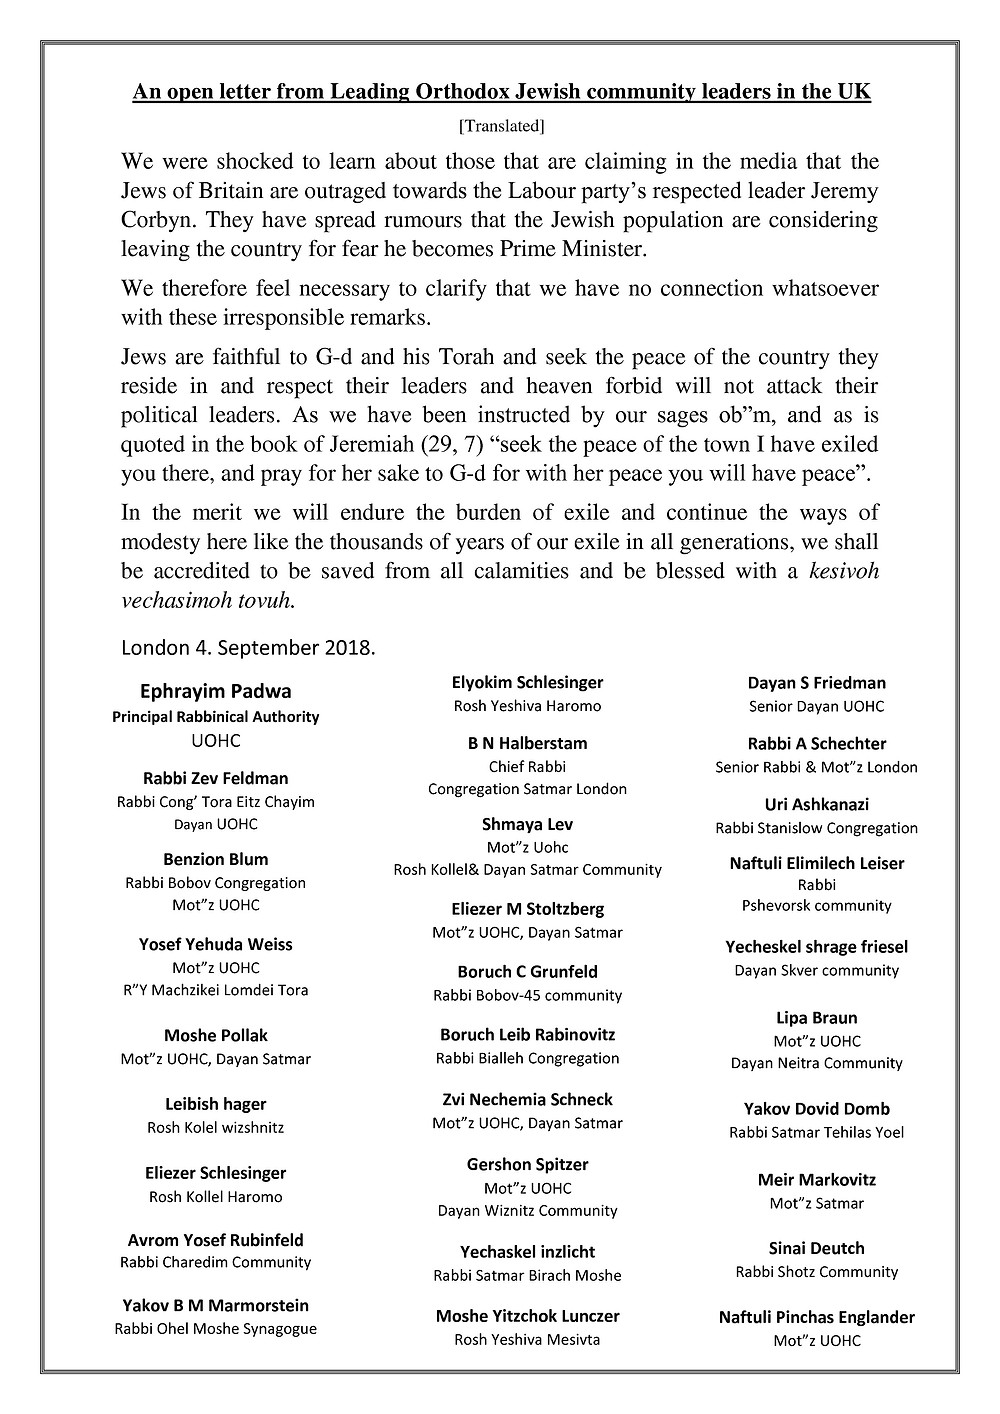 An open letter from Leading Orthodox Jewish community leaders in the UK [Translated]